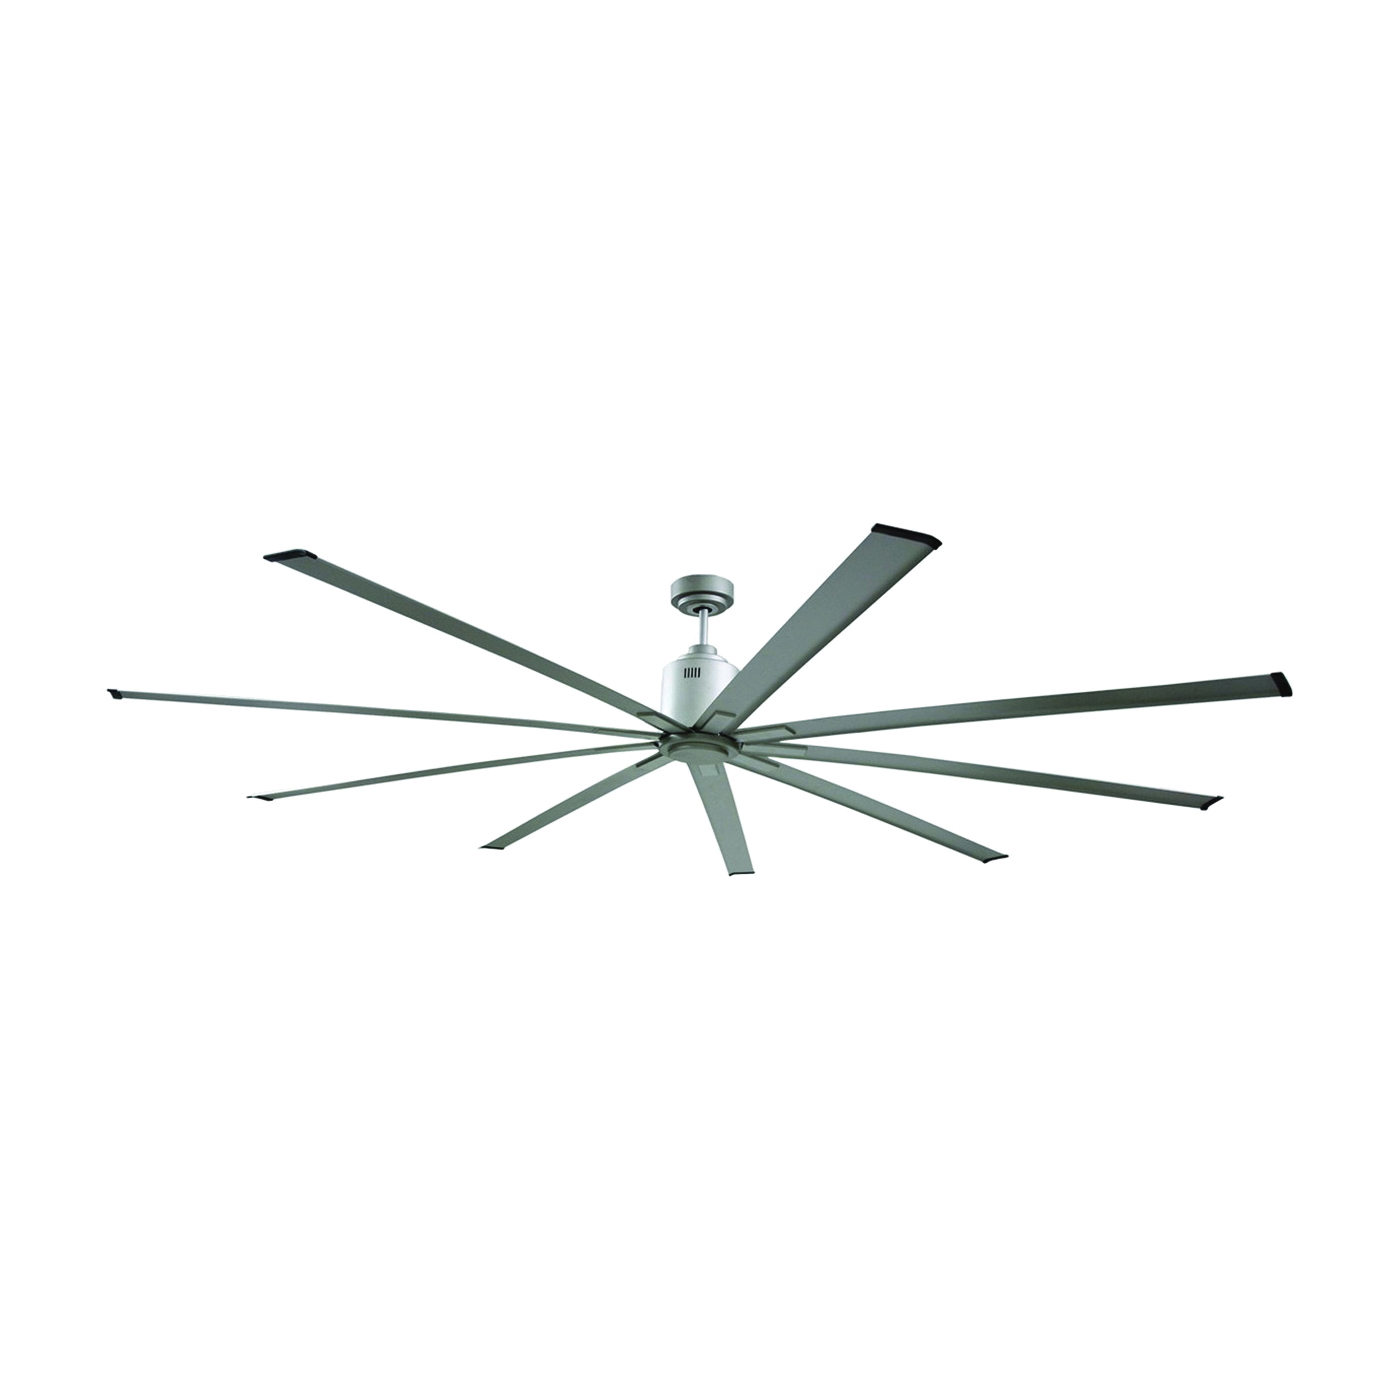 Picture of Big Air ICF96 Industrial Ceiling Fan, 0.5 A, 110 V, 9-Blade, 13,000 cfm Air